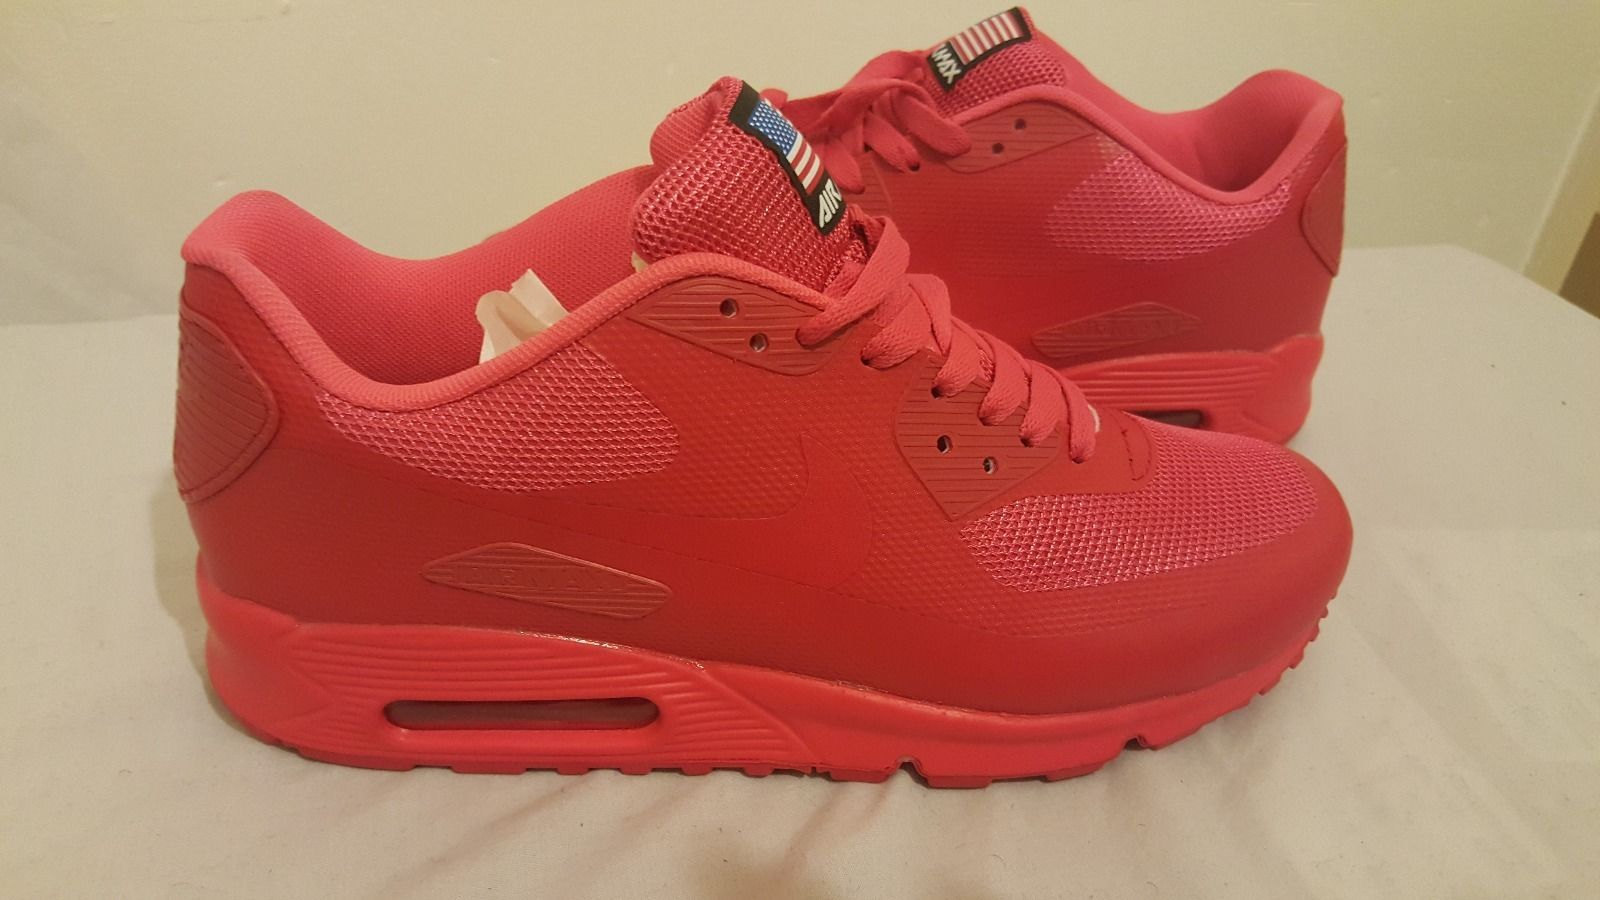 9b20a4ad18 ... free shipping nike air max 90 mens independence hyperfuse solar red size  9 new usa import